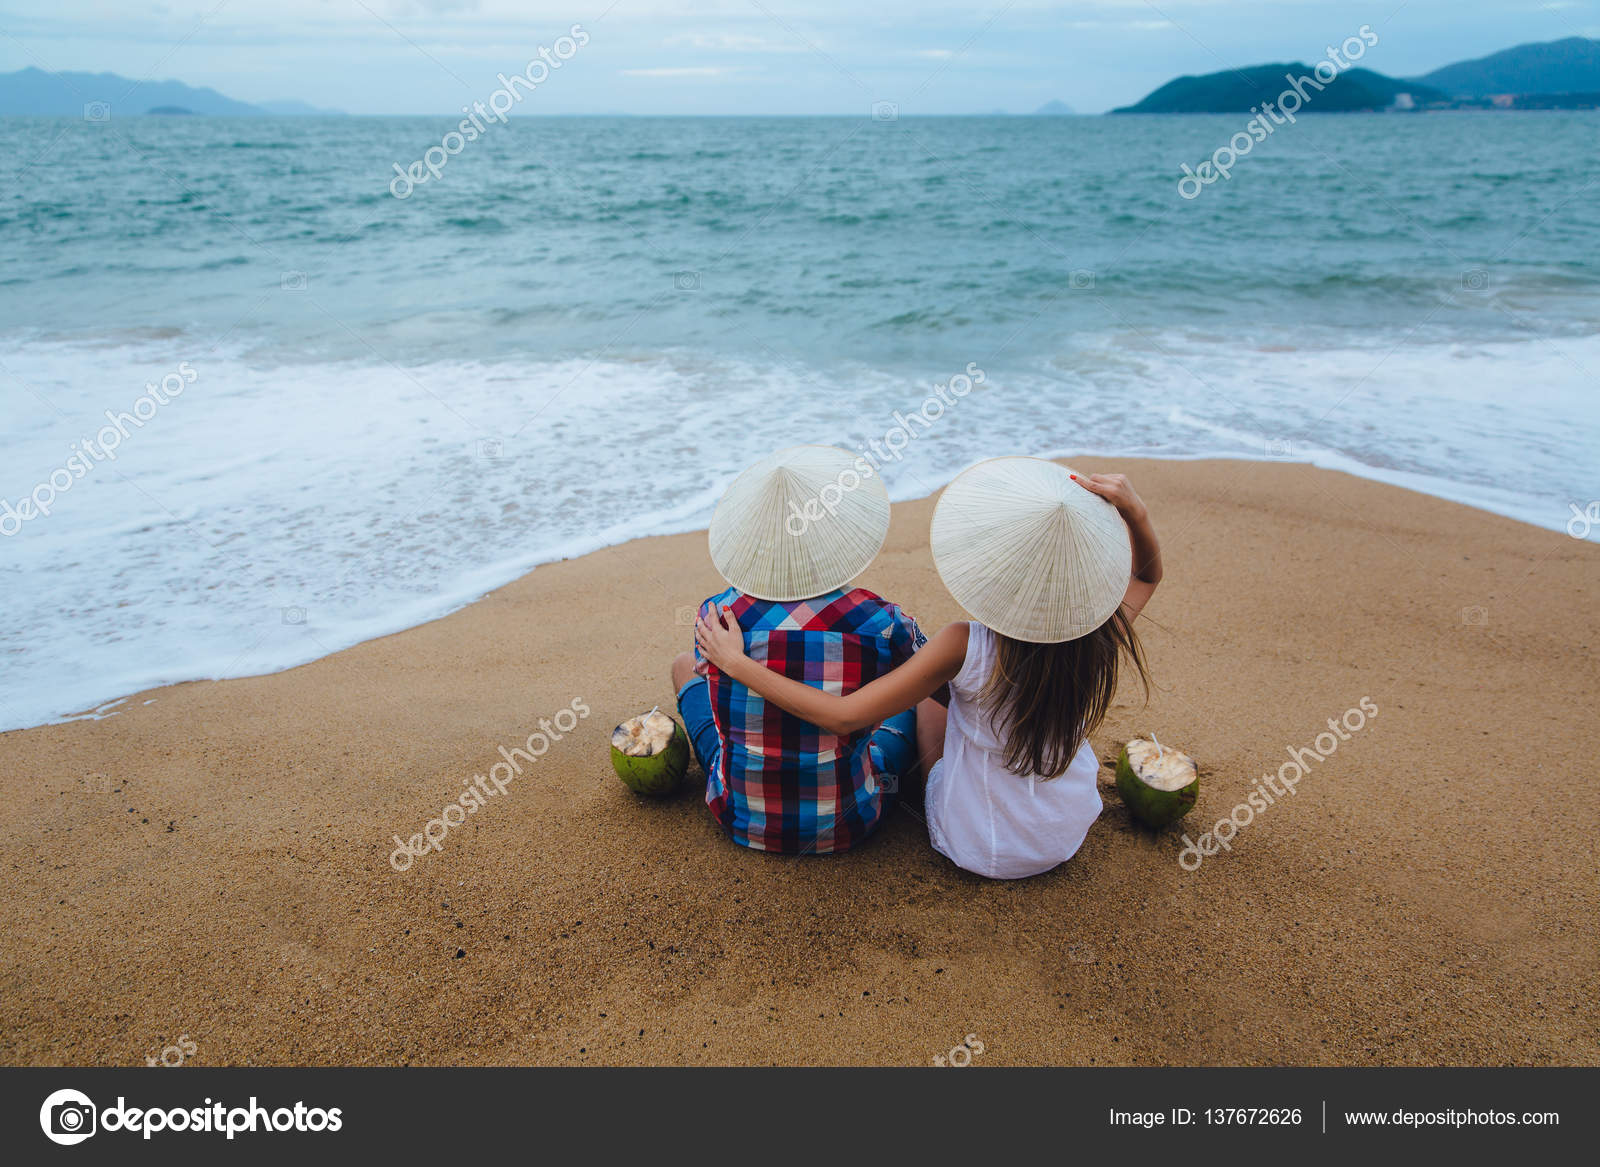 Just Married Couple In Vietnamese Hats Turned Back Sitting On The